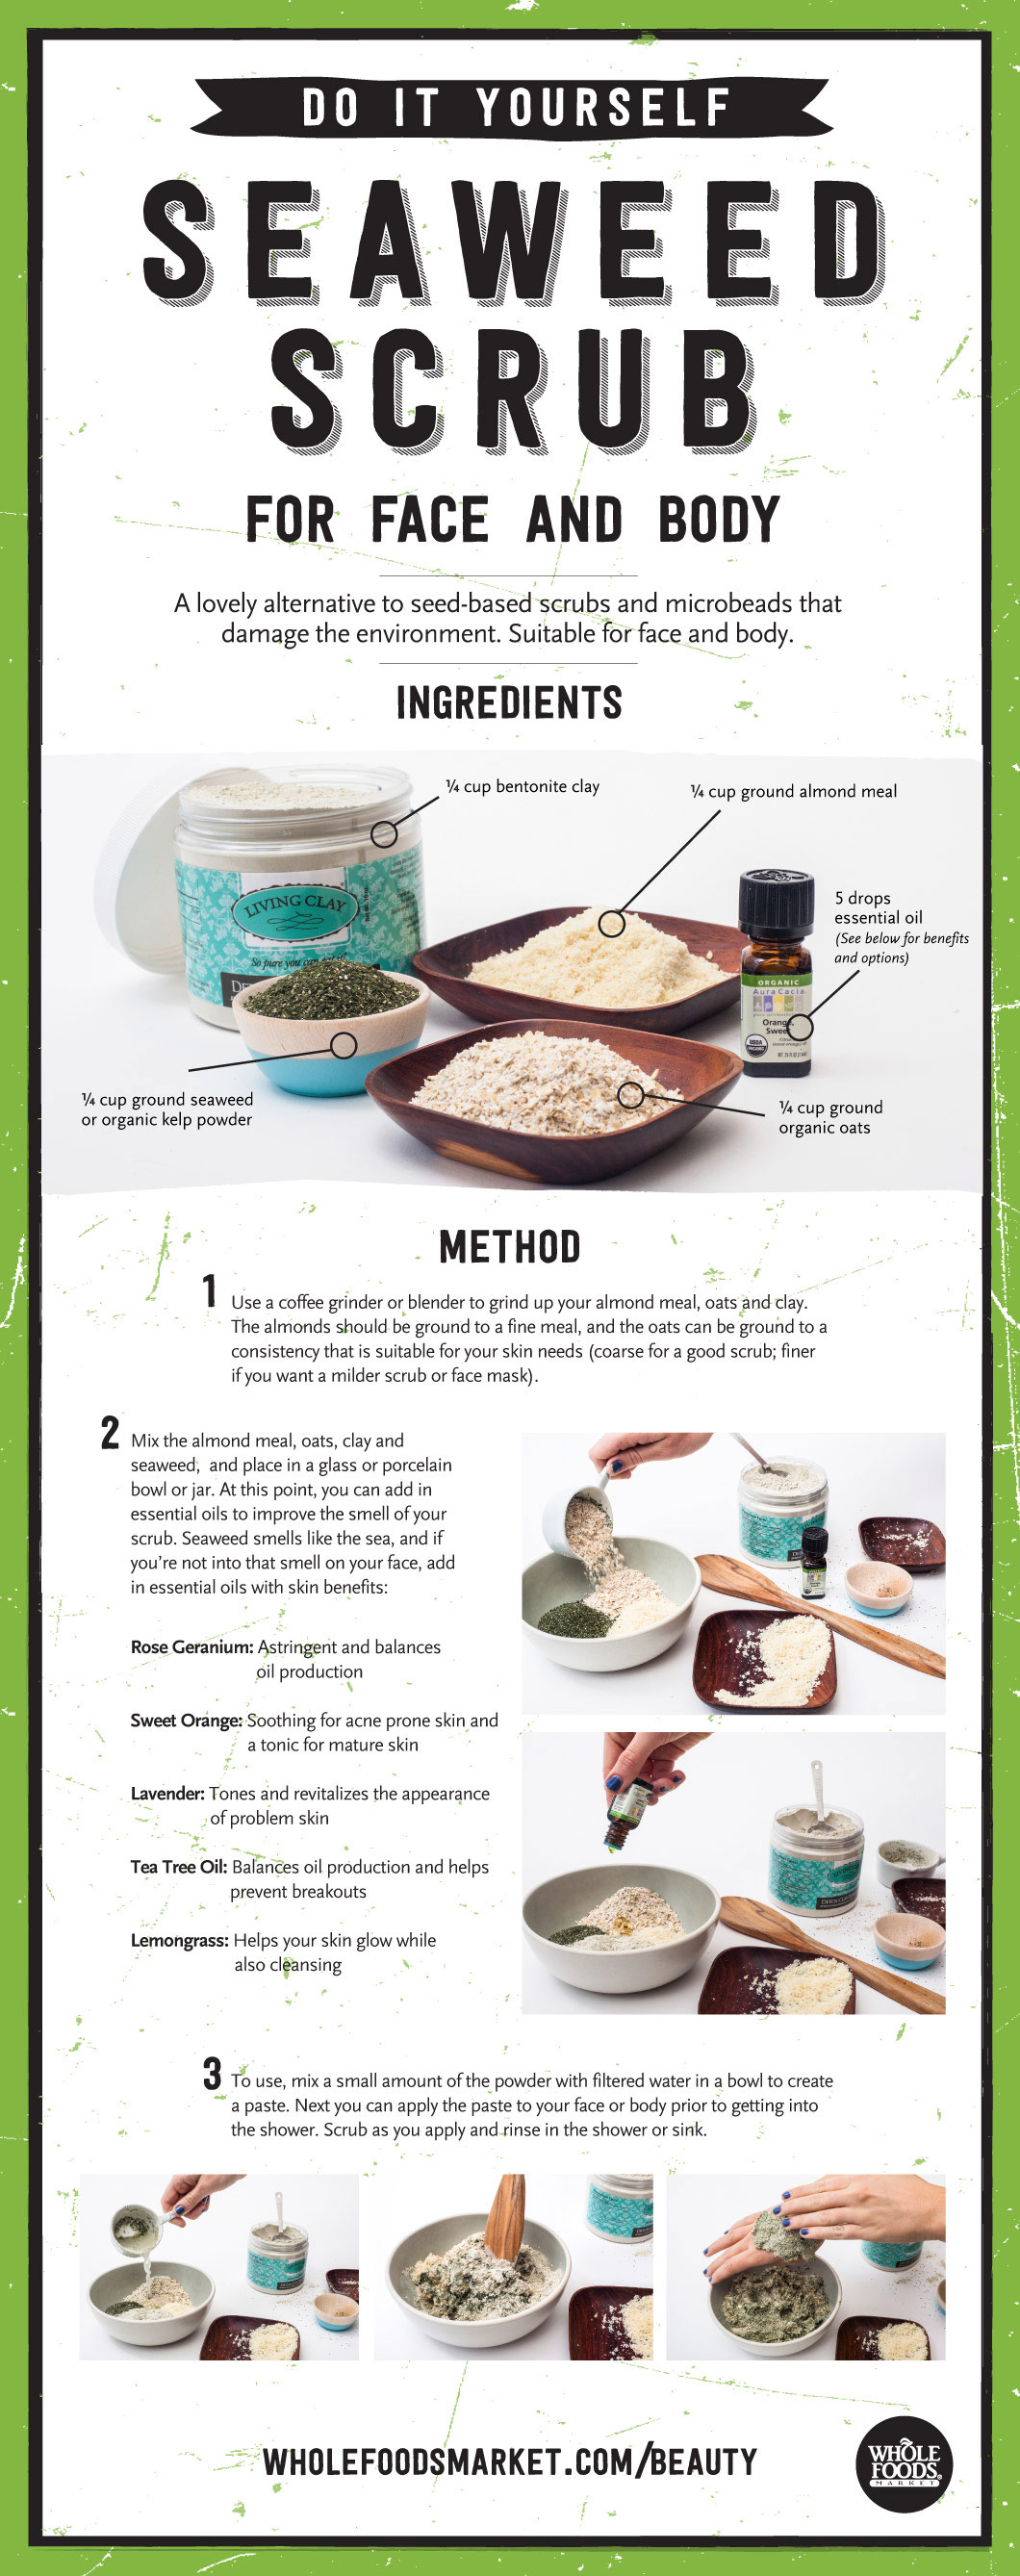 Bathe yourself in seaweed whole foods market diy seaweed scrub for face and body solutioingenieria Images